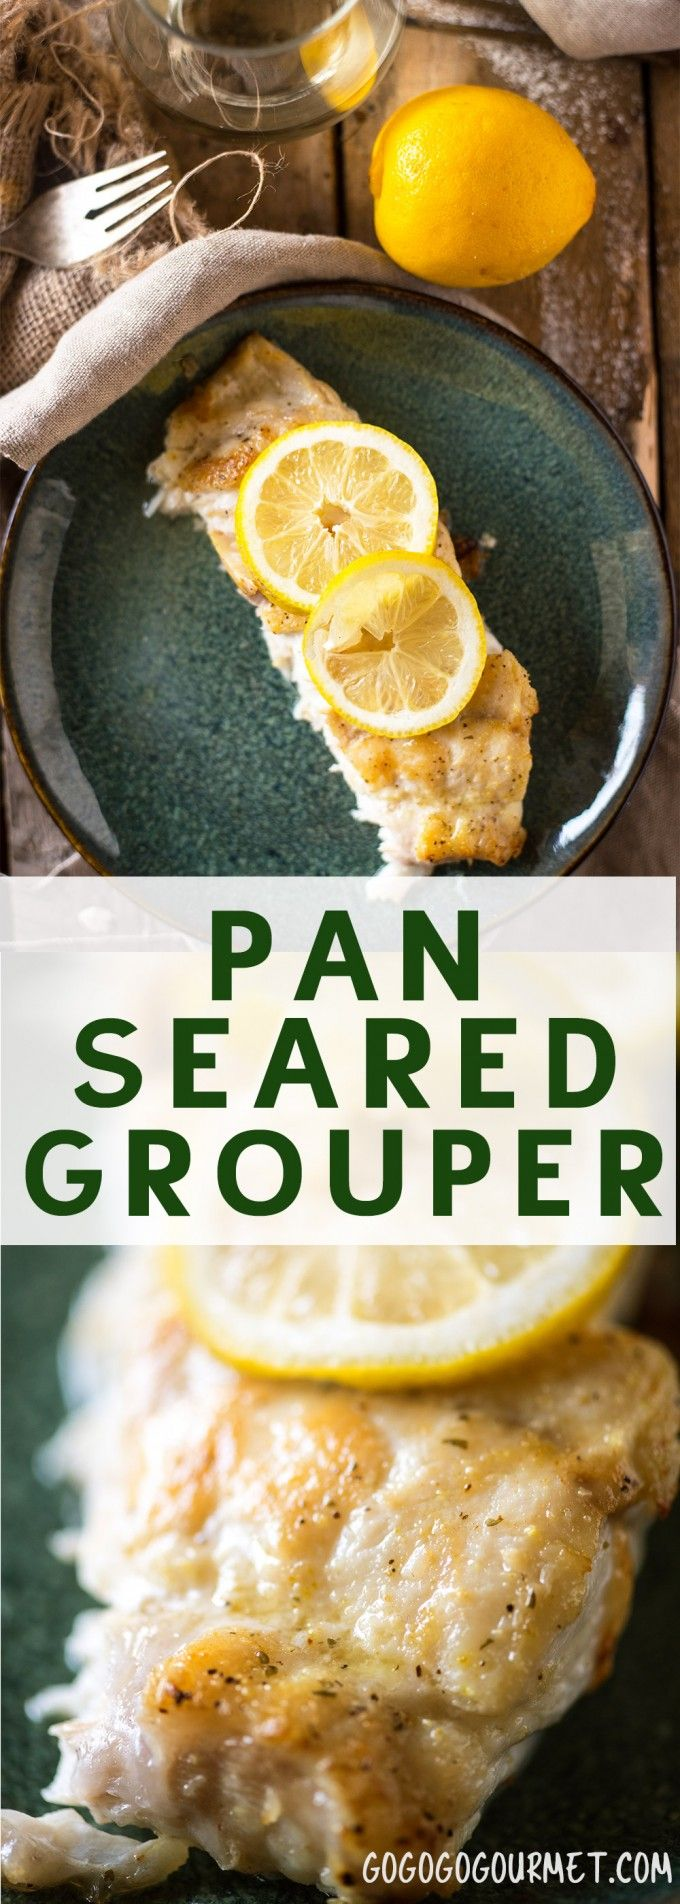 Pan Seared Grouper Is A Fast, Easy, And Healthy Dinner Than Is Ready In